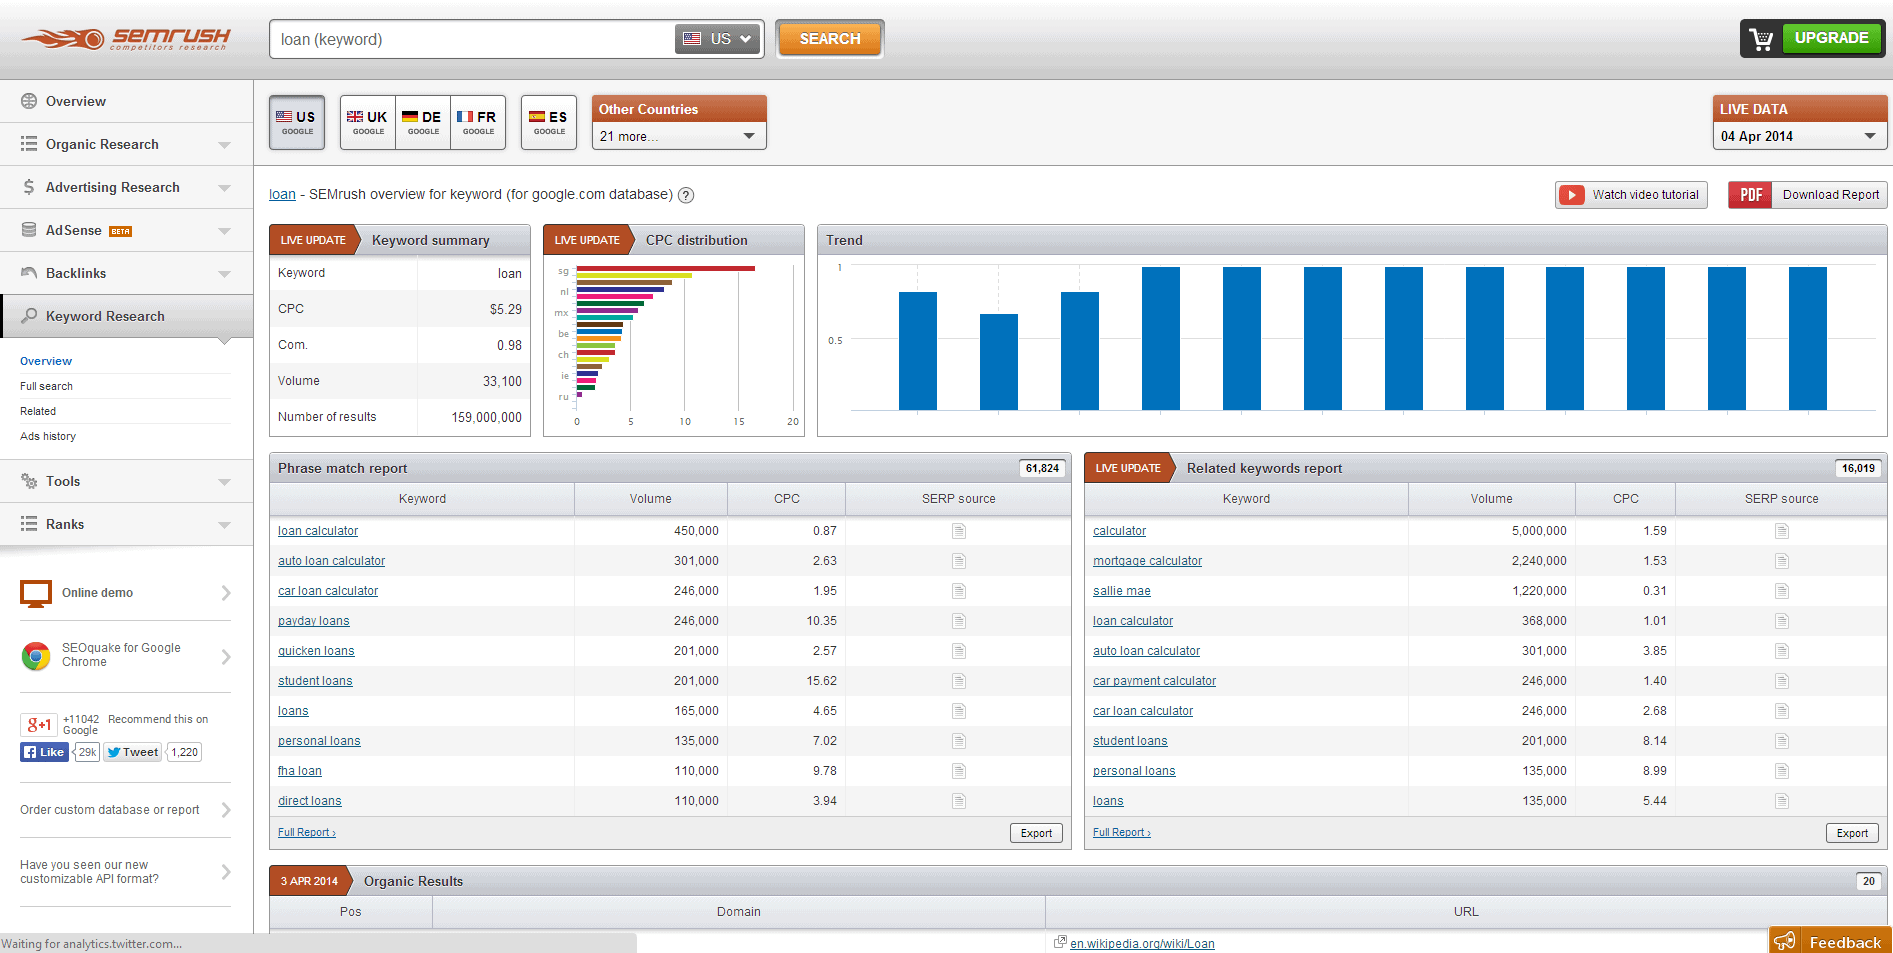 Semrush - Best SEO Tools